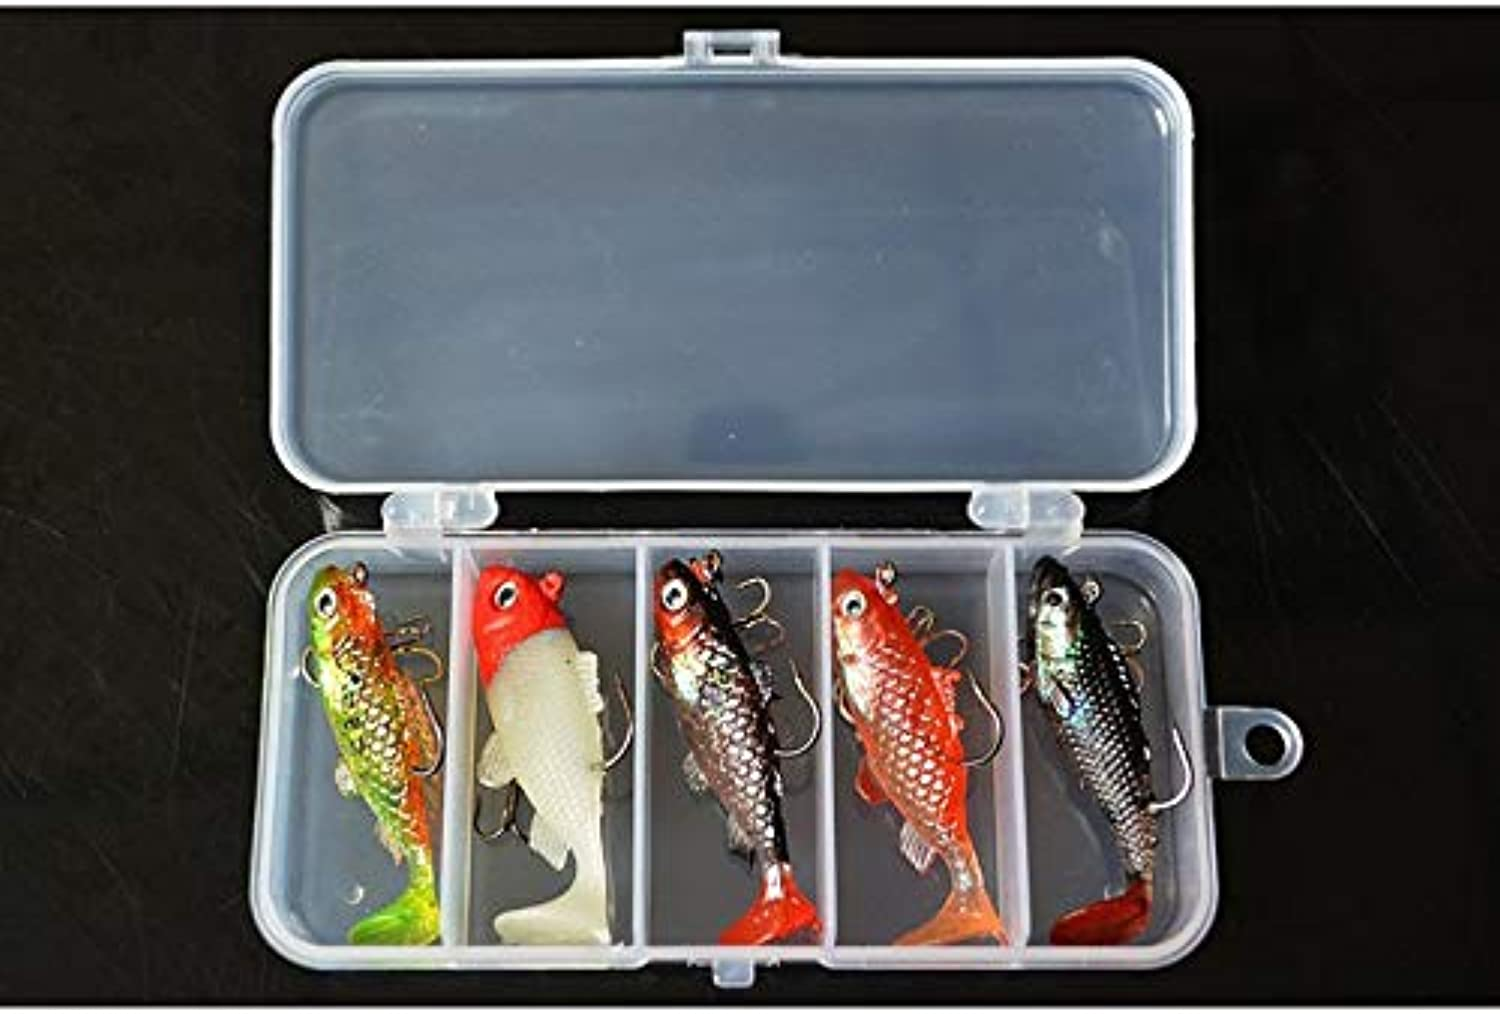 Generic Fishing Lure Kit Lead Fish 60mm 8.5g Super Cost Performance Soft Lure Bait 5 Pieces lot with Box